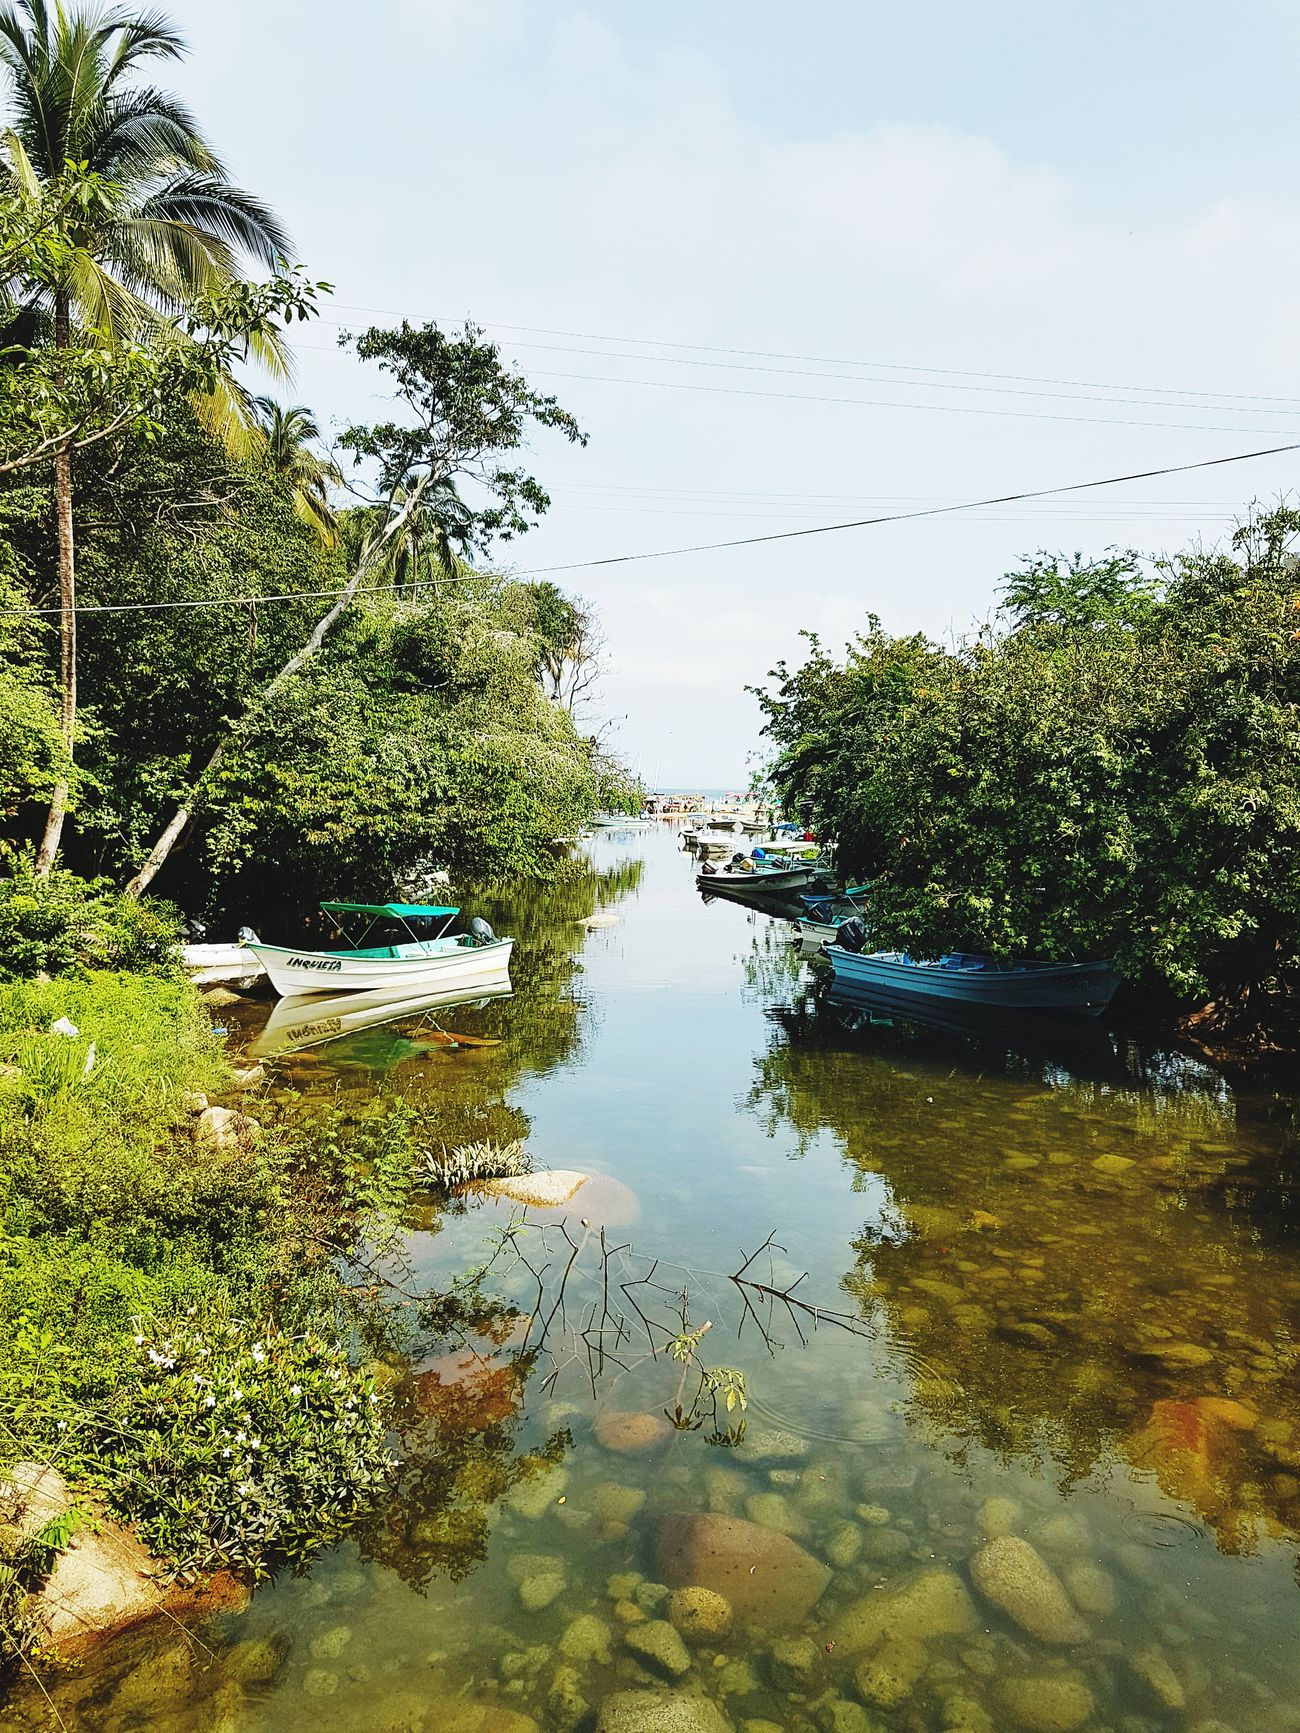 River Reflection Water Lake No People Outdoors Tree Tranquility Day Nature Sky Beauty In Nature Boats Boats⛵️ Boats And Water Green Vallarta,Mexico Freshness Tree Scenics Sun Mexican Flowers Rocks Rocks And Water